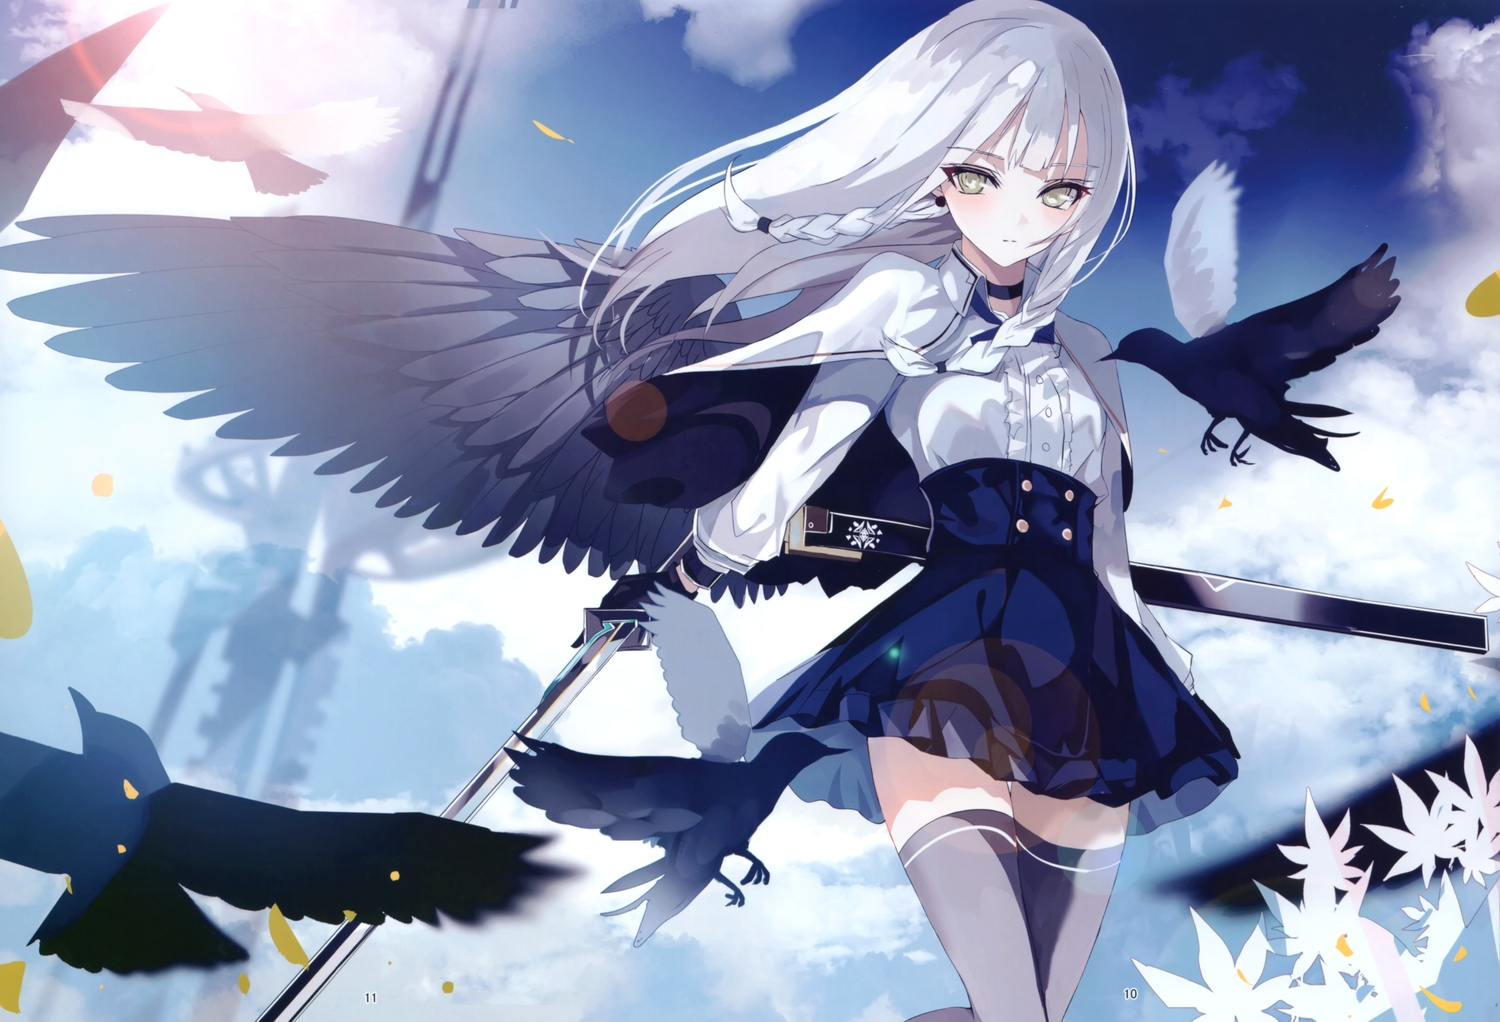 animal beckzawachi bird braids cape clouds flowers gloves gray_hair green_eyes katana long_hair original scan sky sword thighhighs weapon wings